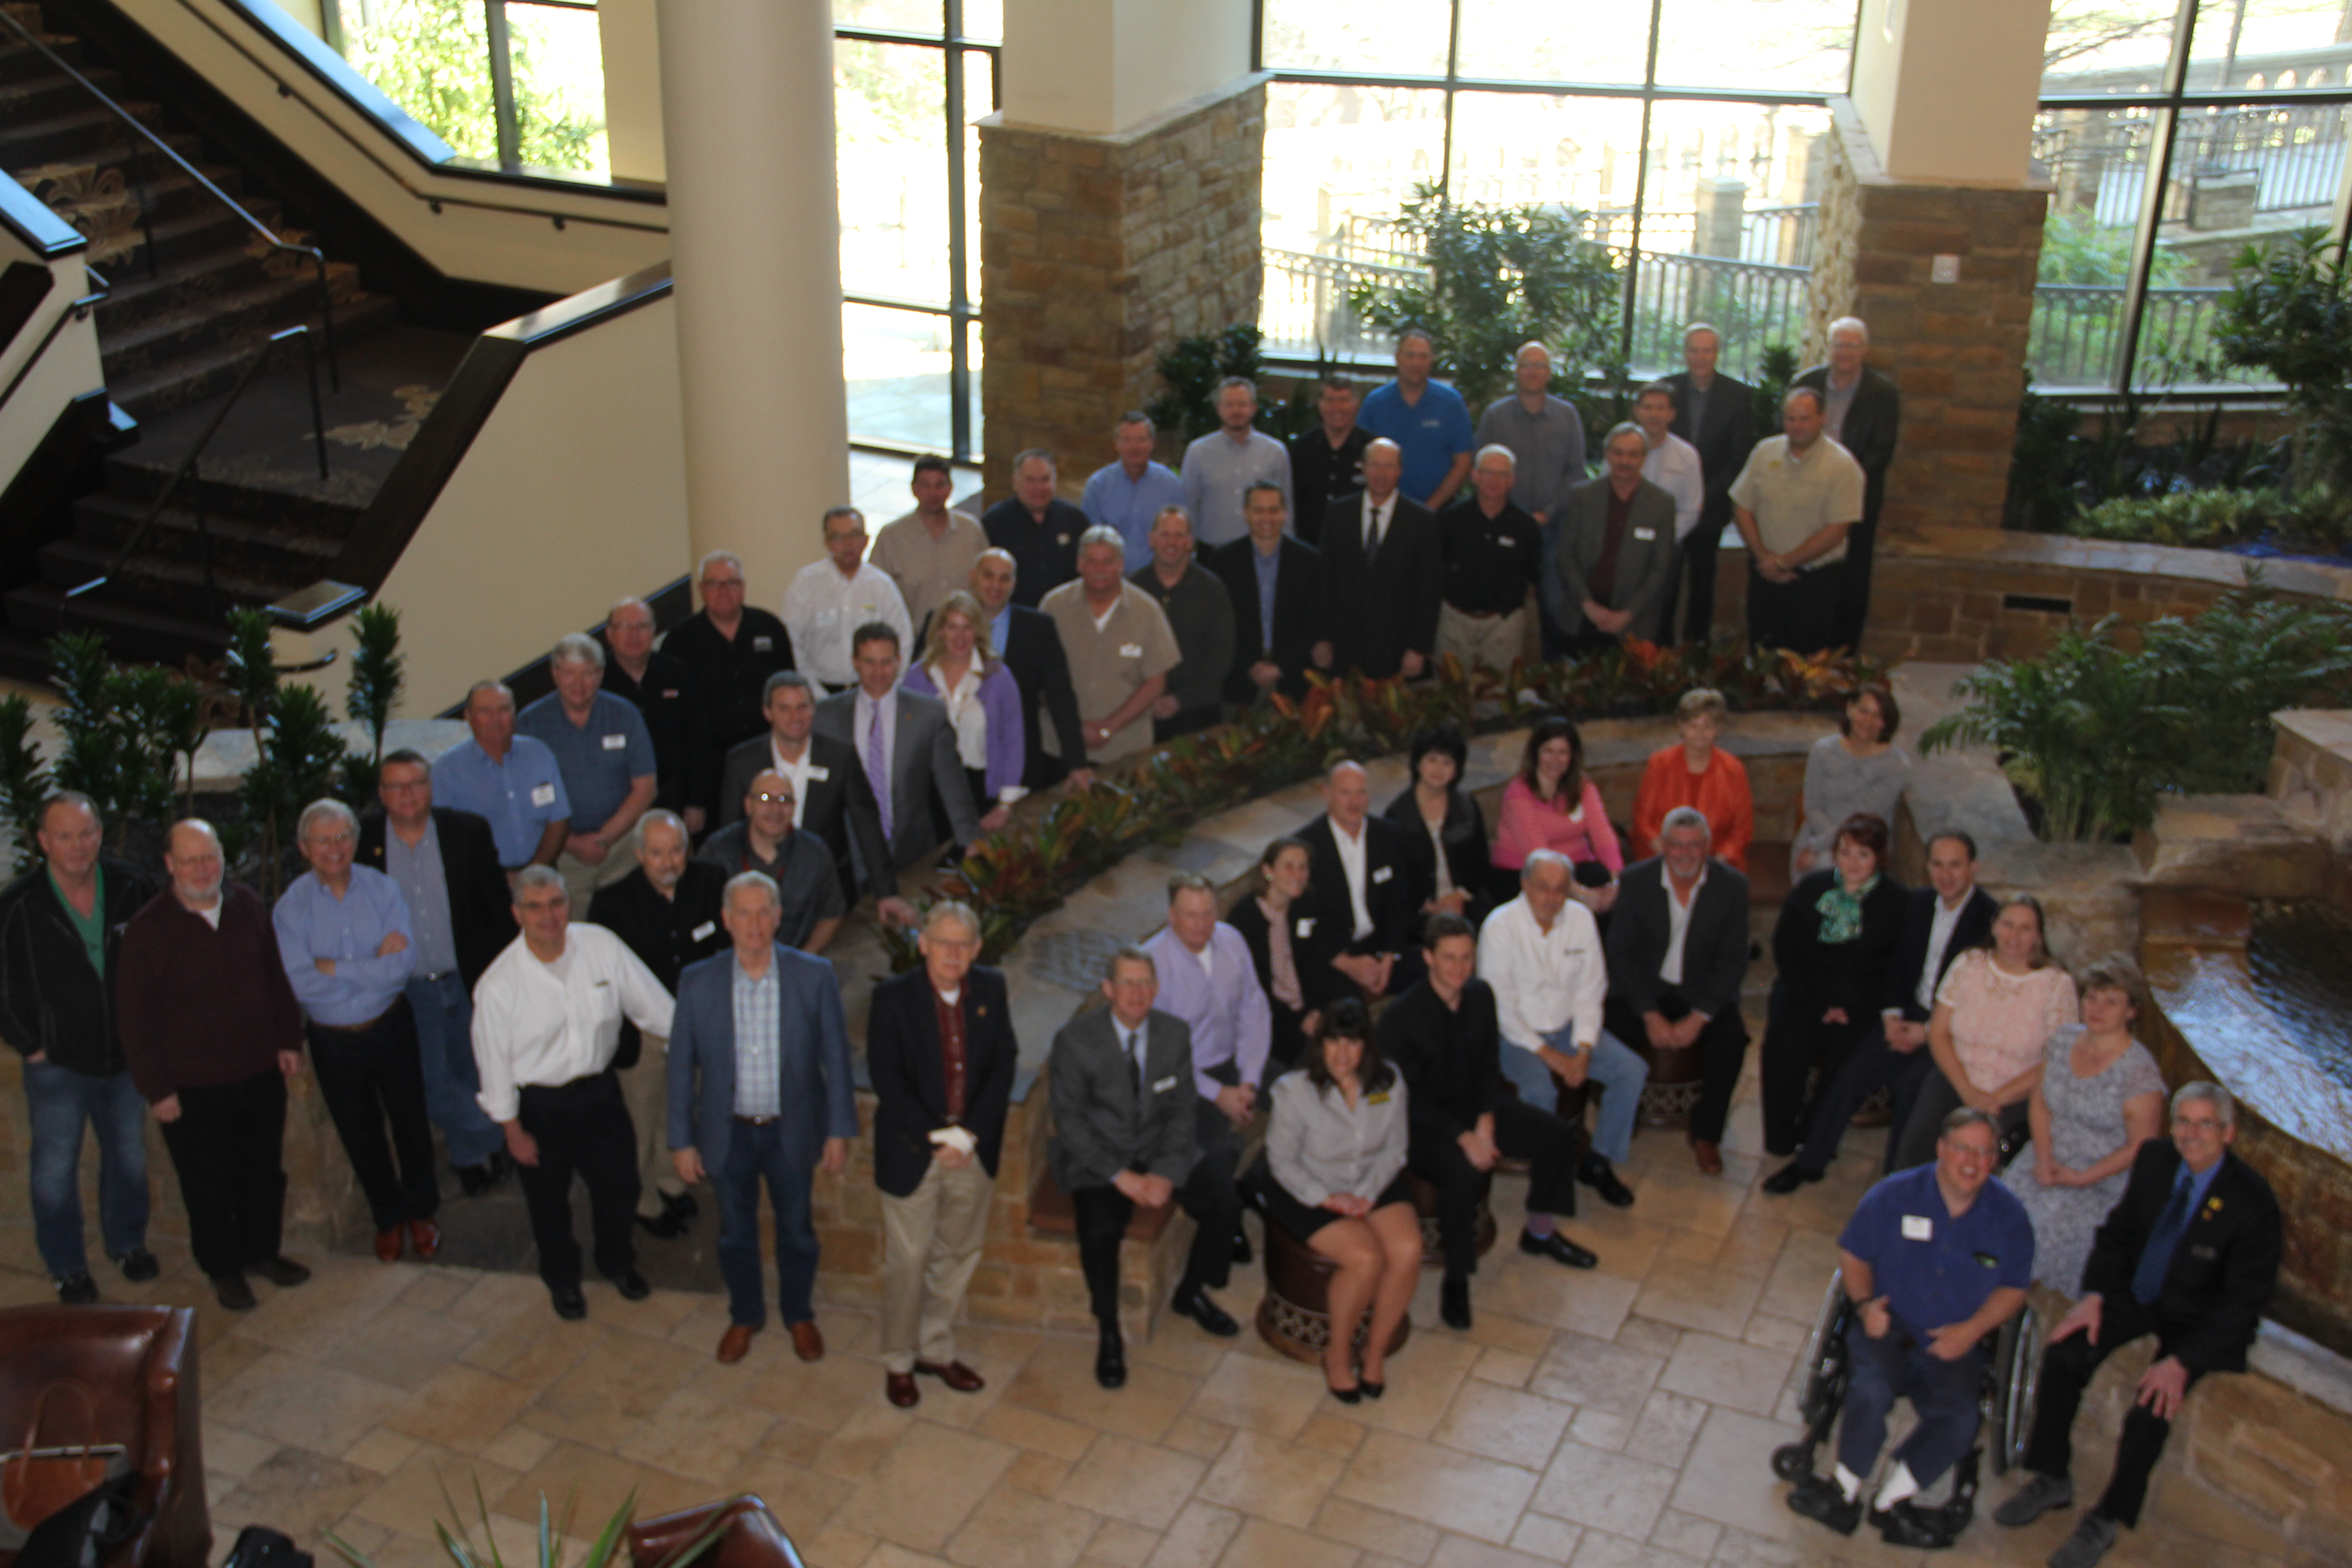 2016 State Meeting Attendees, San Antonio, TX